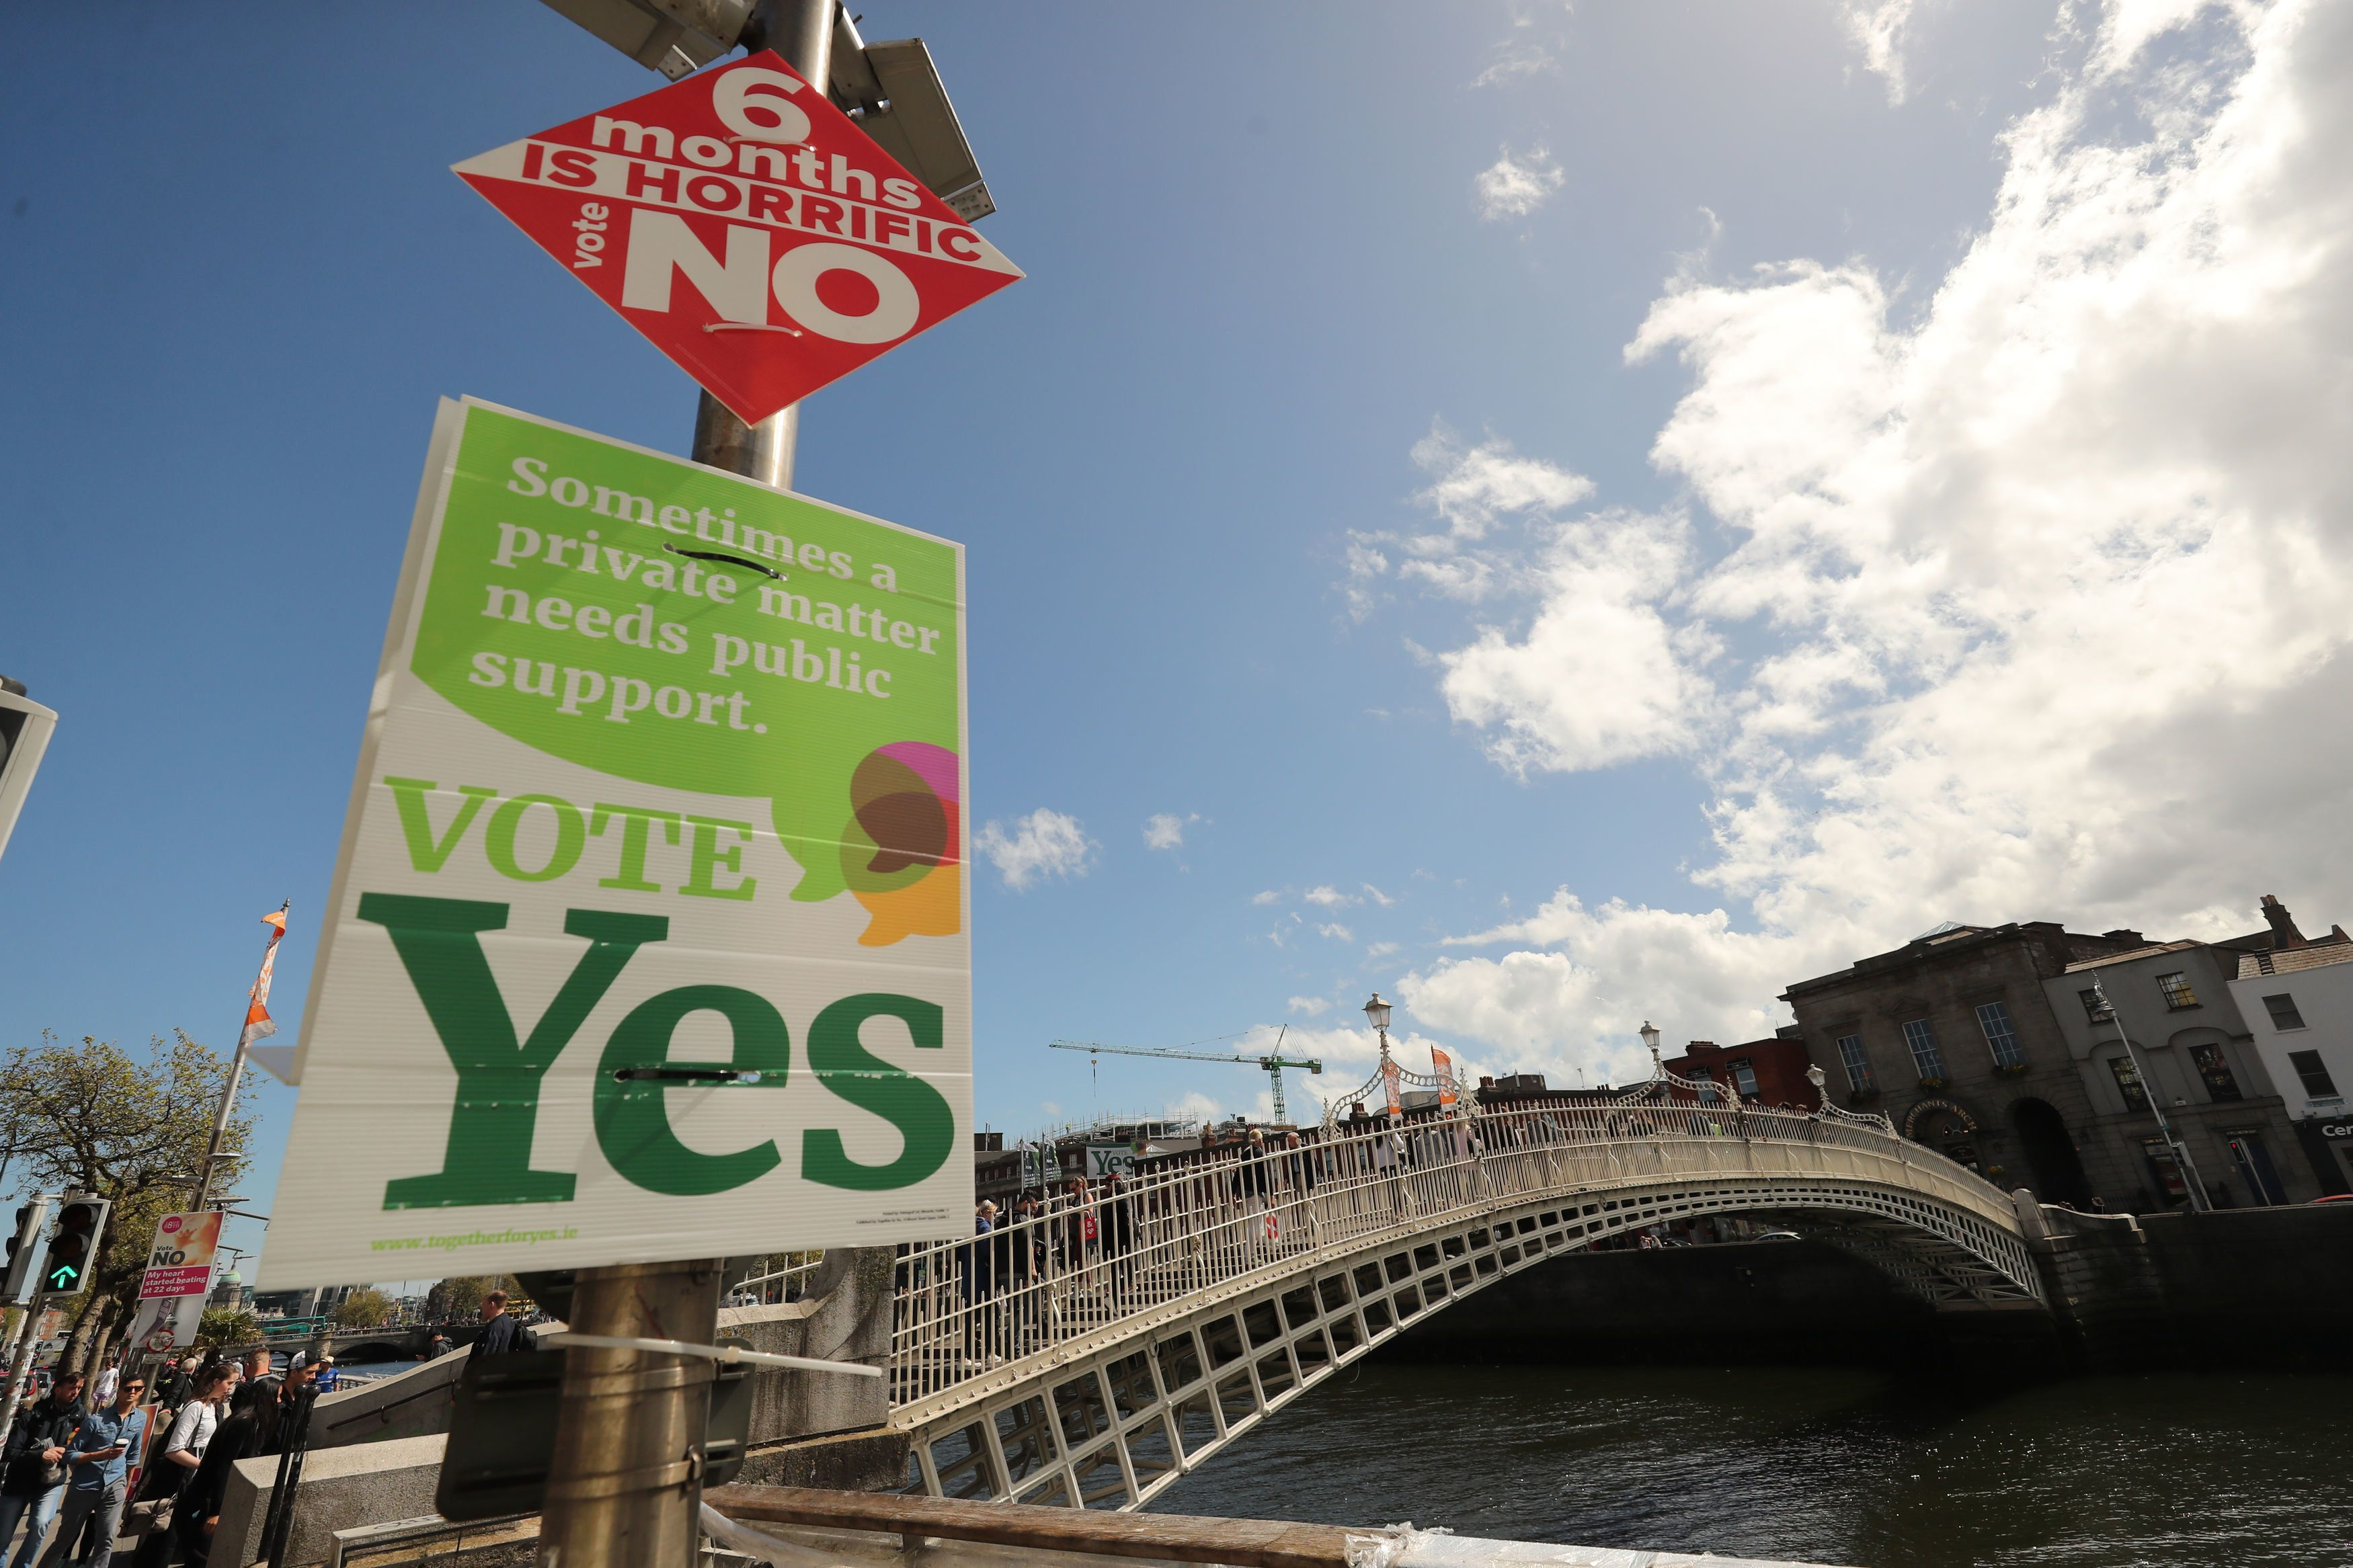 Referendum in Ireland could lift strict ban on abortion